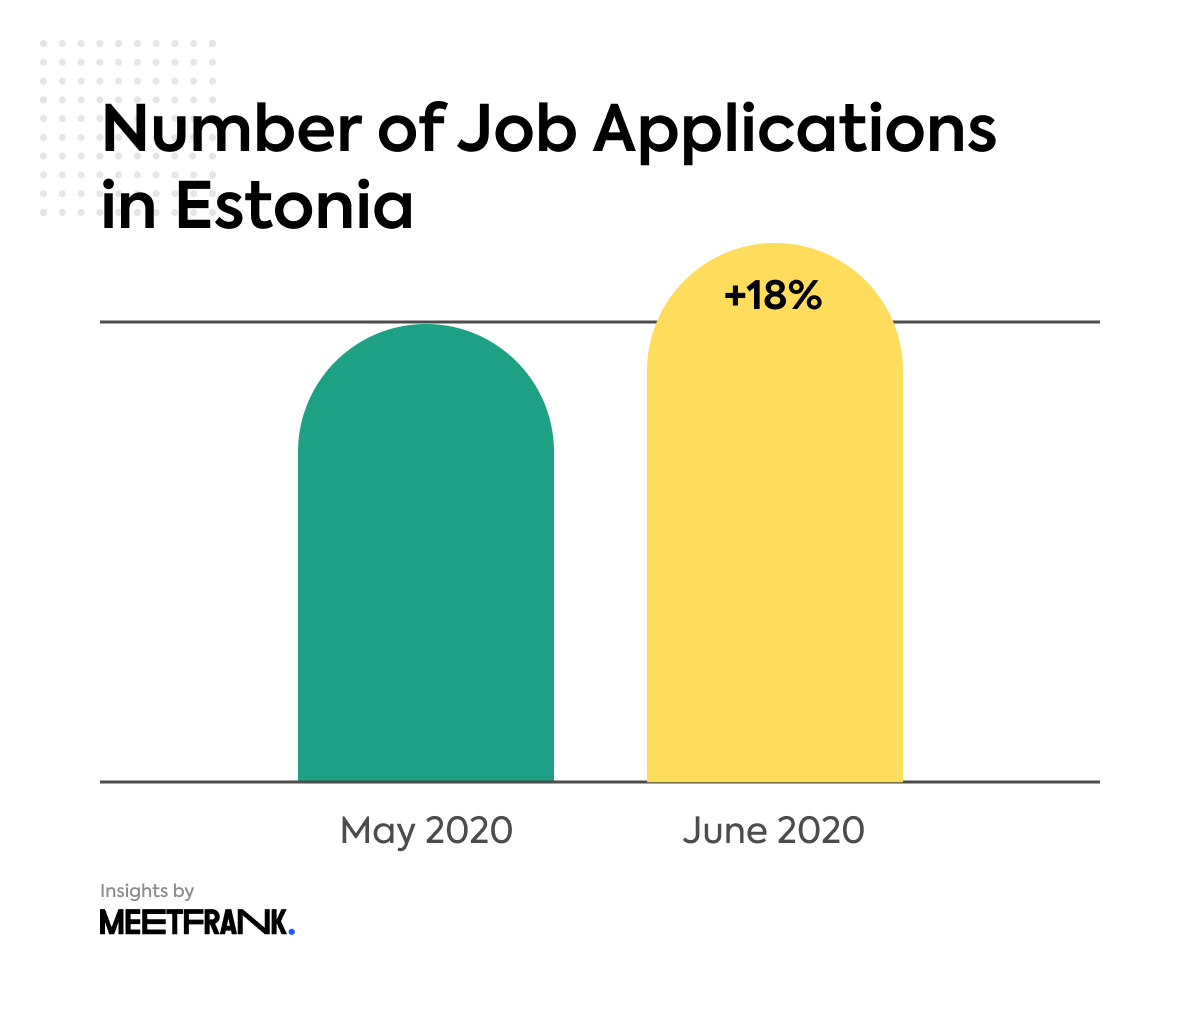 the job openings in Estonia